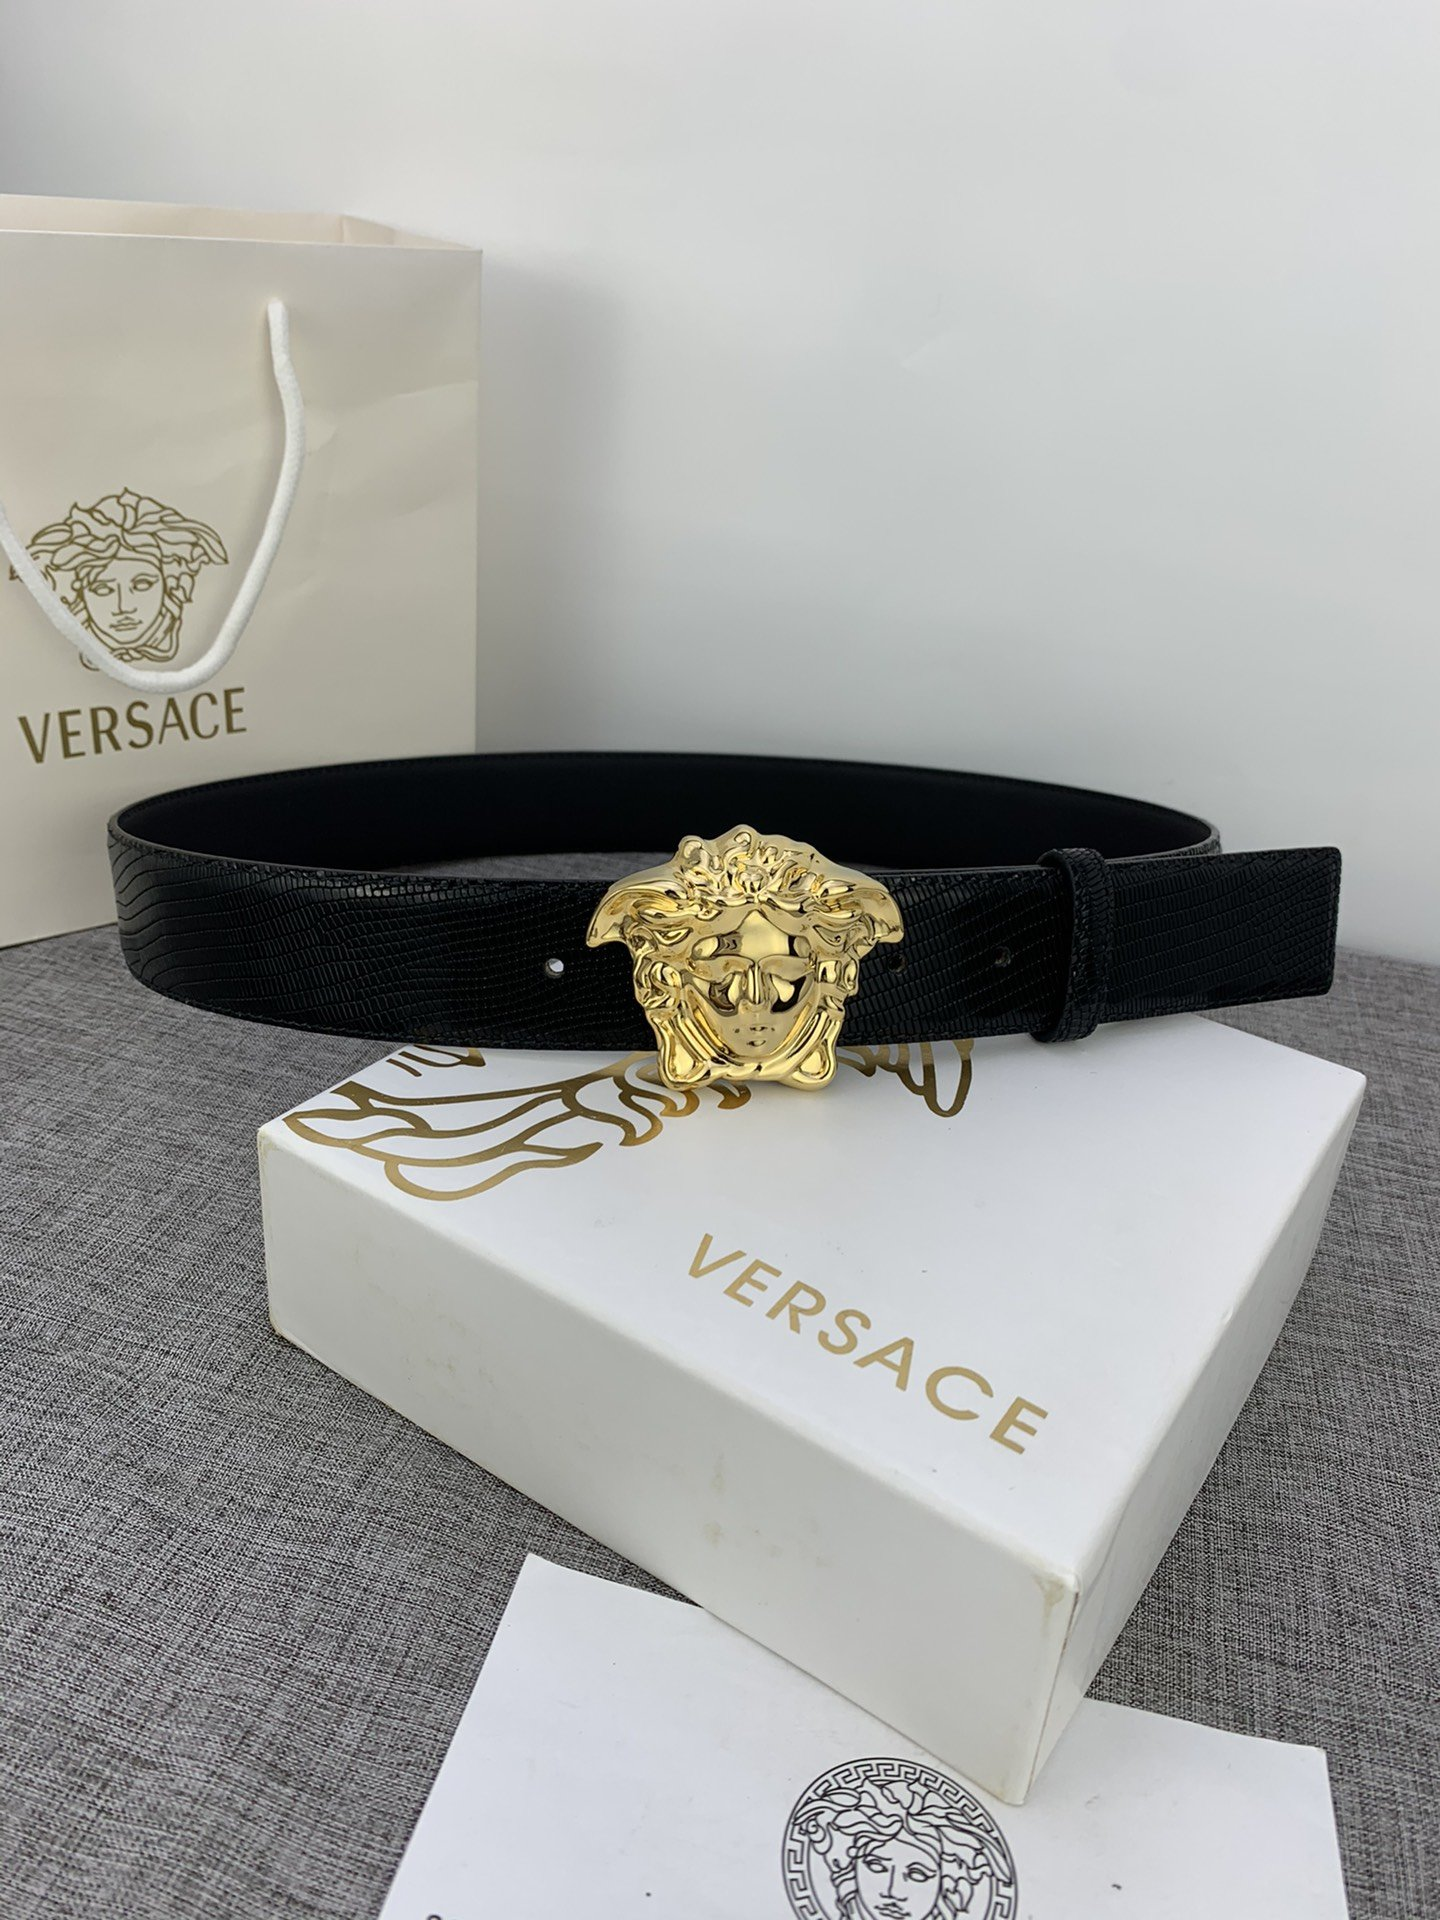 Cheap Replica Versace Men Reversible Leather Belt Width 4cm With Gold Buckle 023